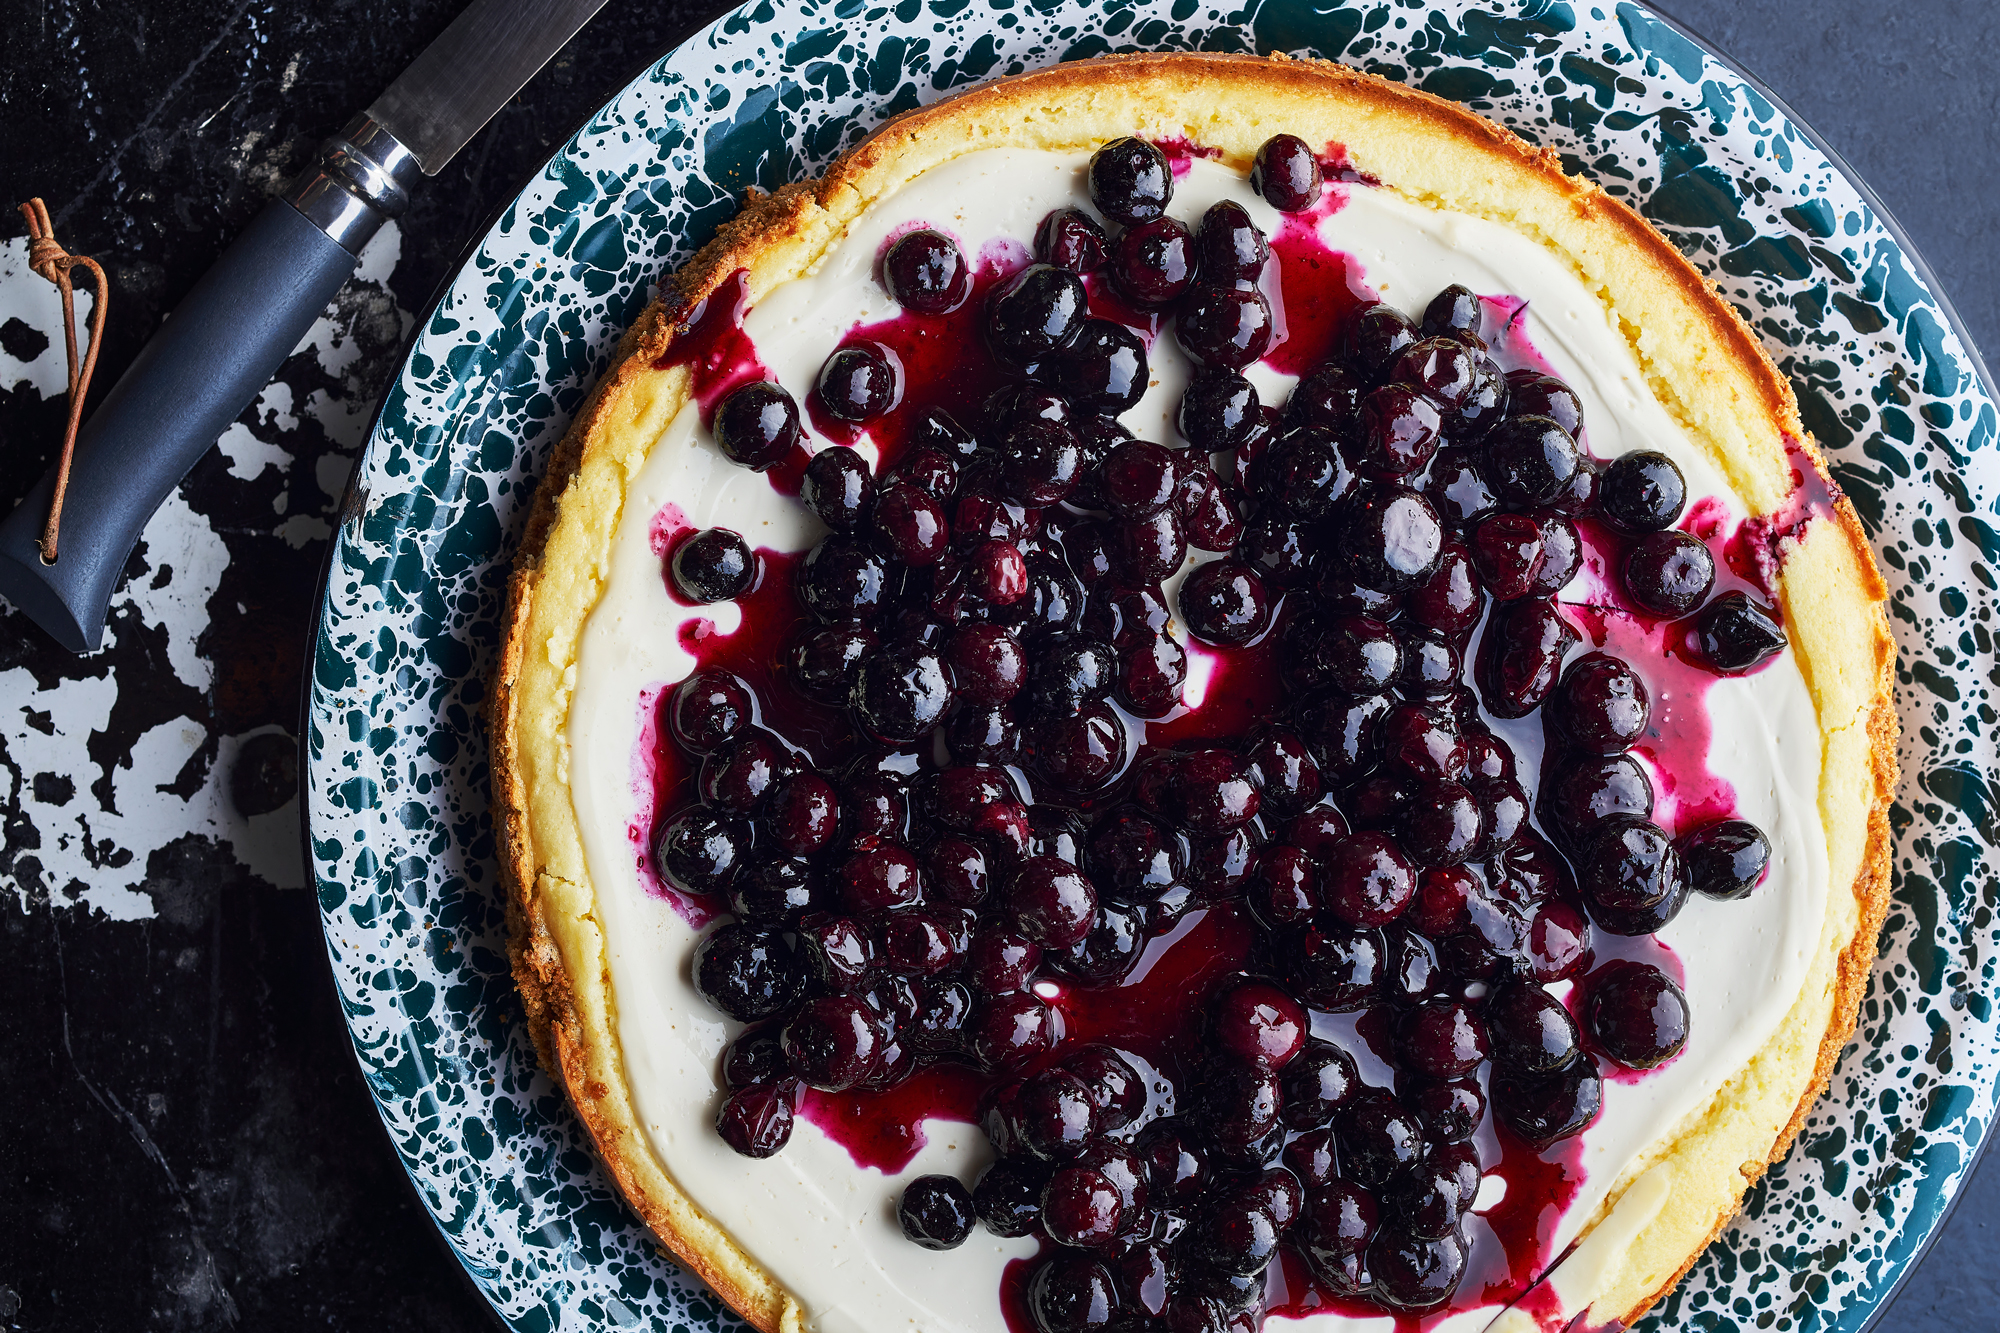 St. Louis Style Cheesecake with Blueberries Recipe